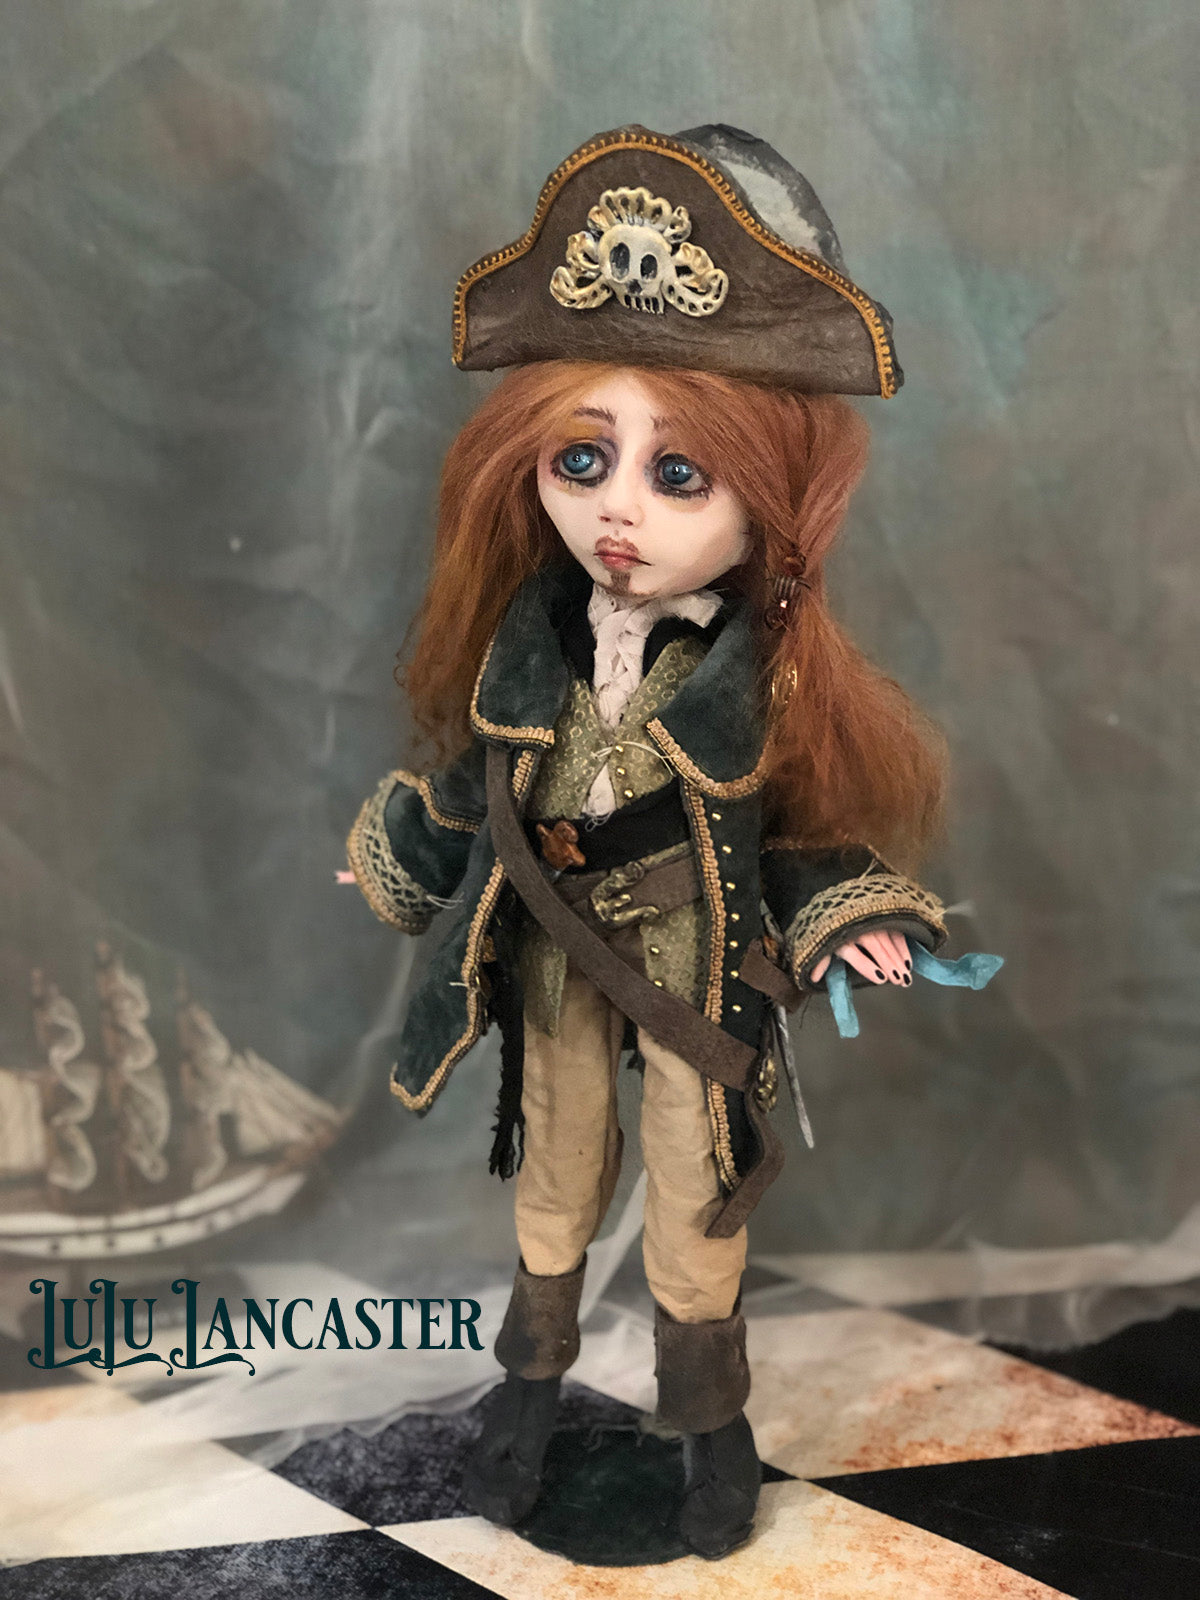 Hidalgo the Pirate OOAK LuLu Lancaster Art Doll